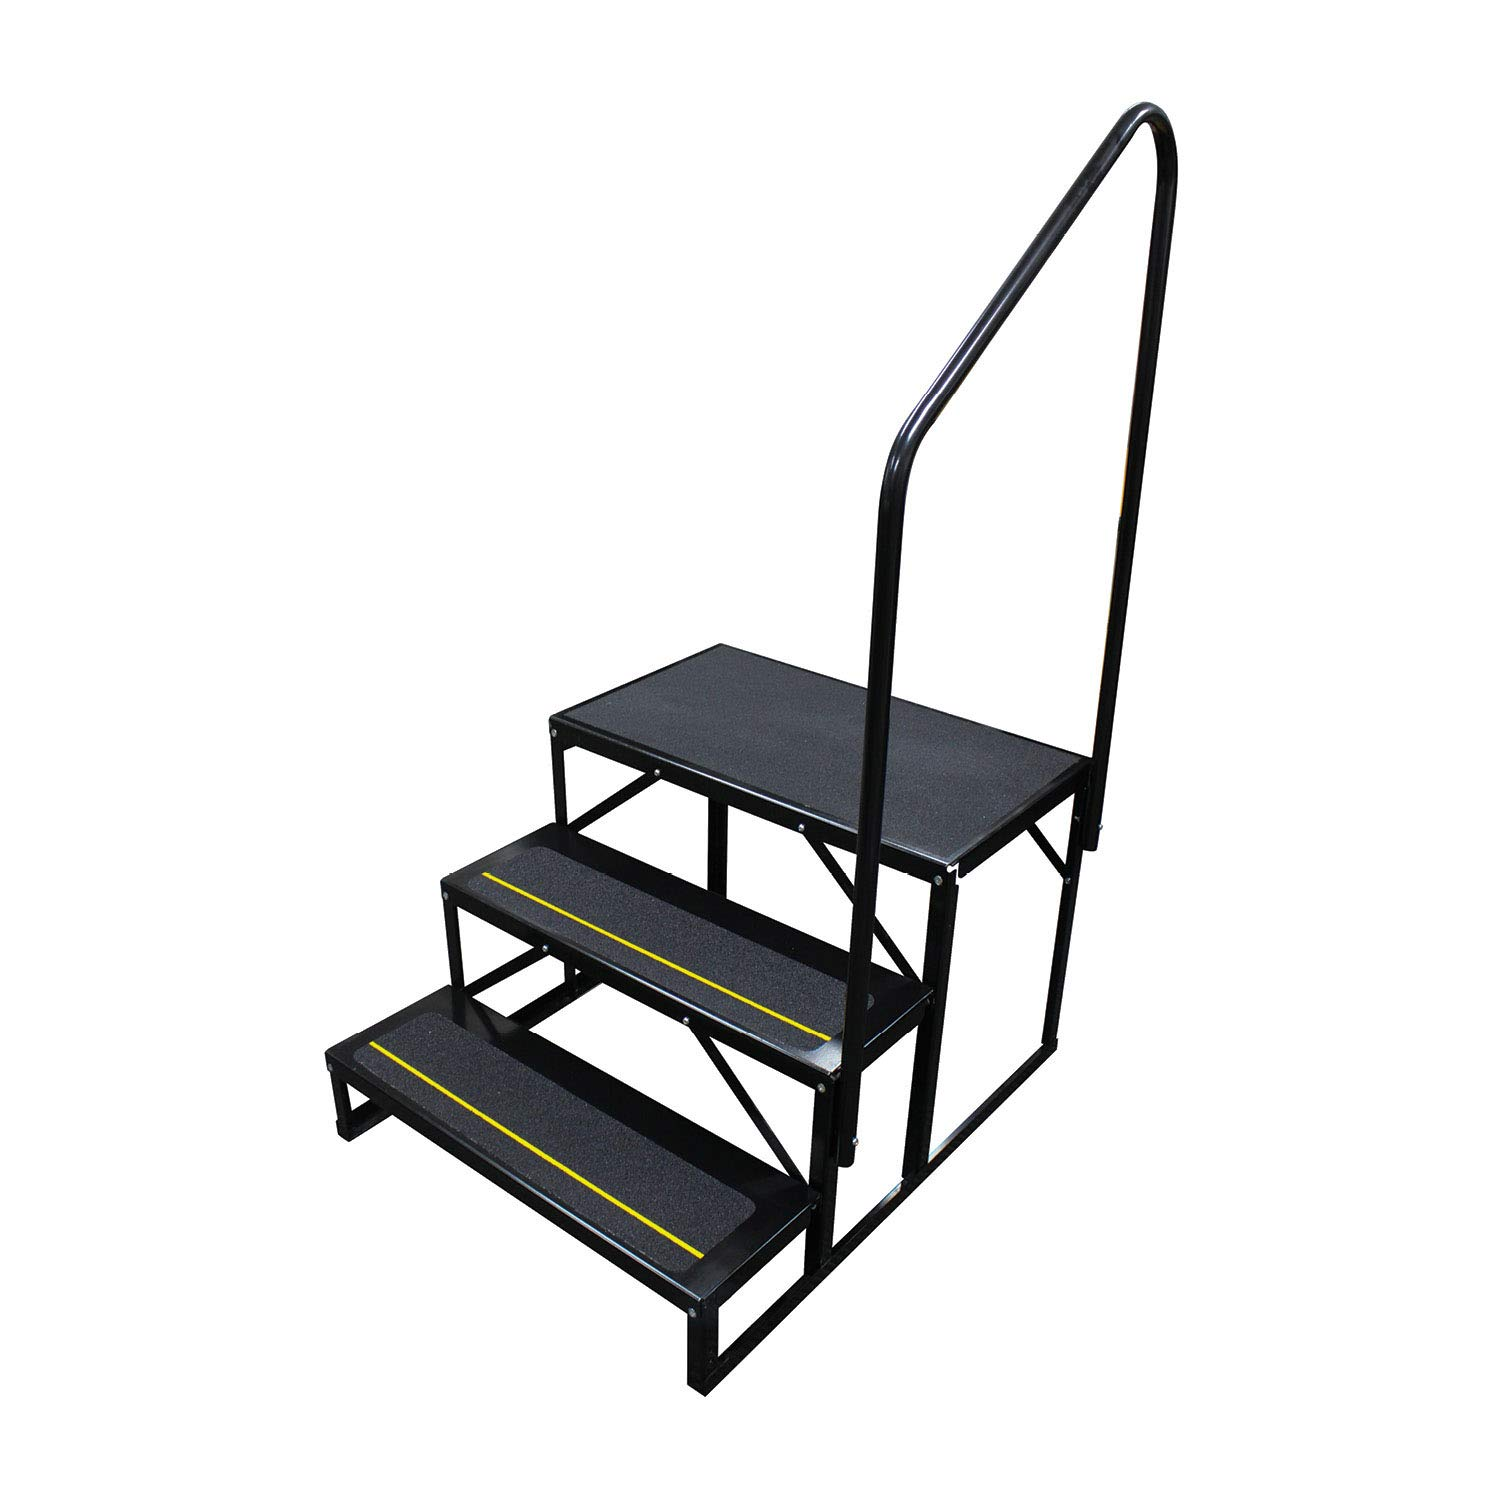 Quick Products Black Standard QP-S5W2S Economy 5th Wheel Stair – 3-Step